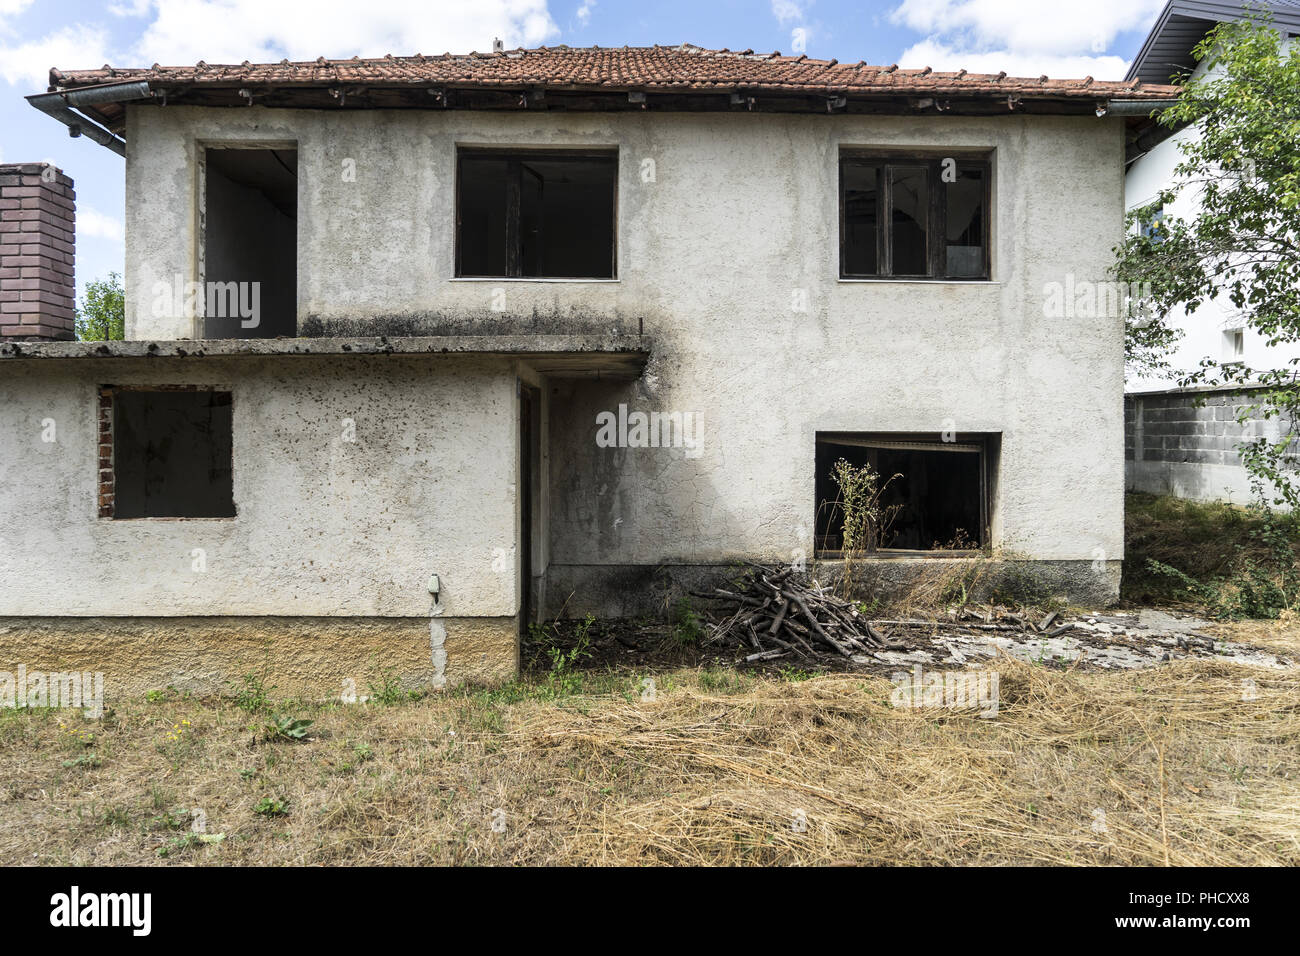 Destroyed House from the Bosnian War, Bosnia - Stock Image